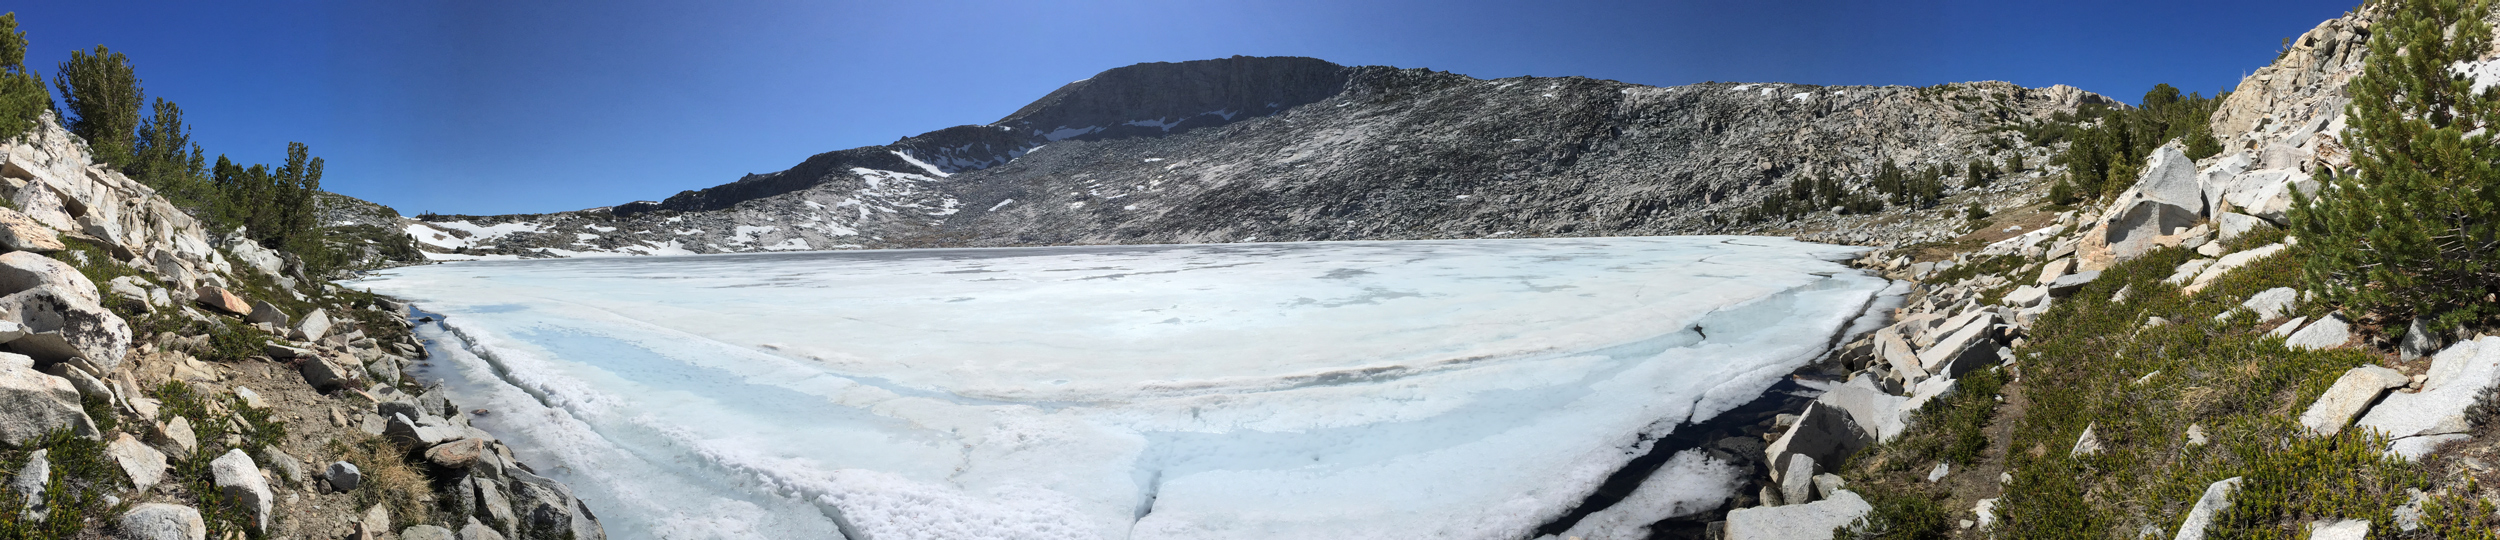 SHR Soldier Lake Panorama